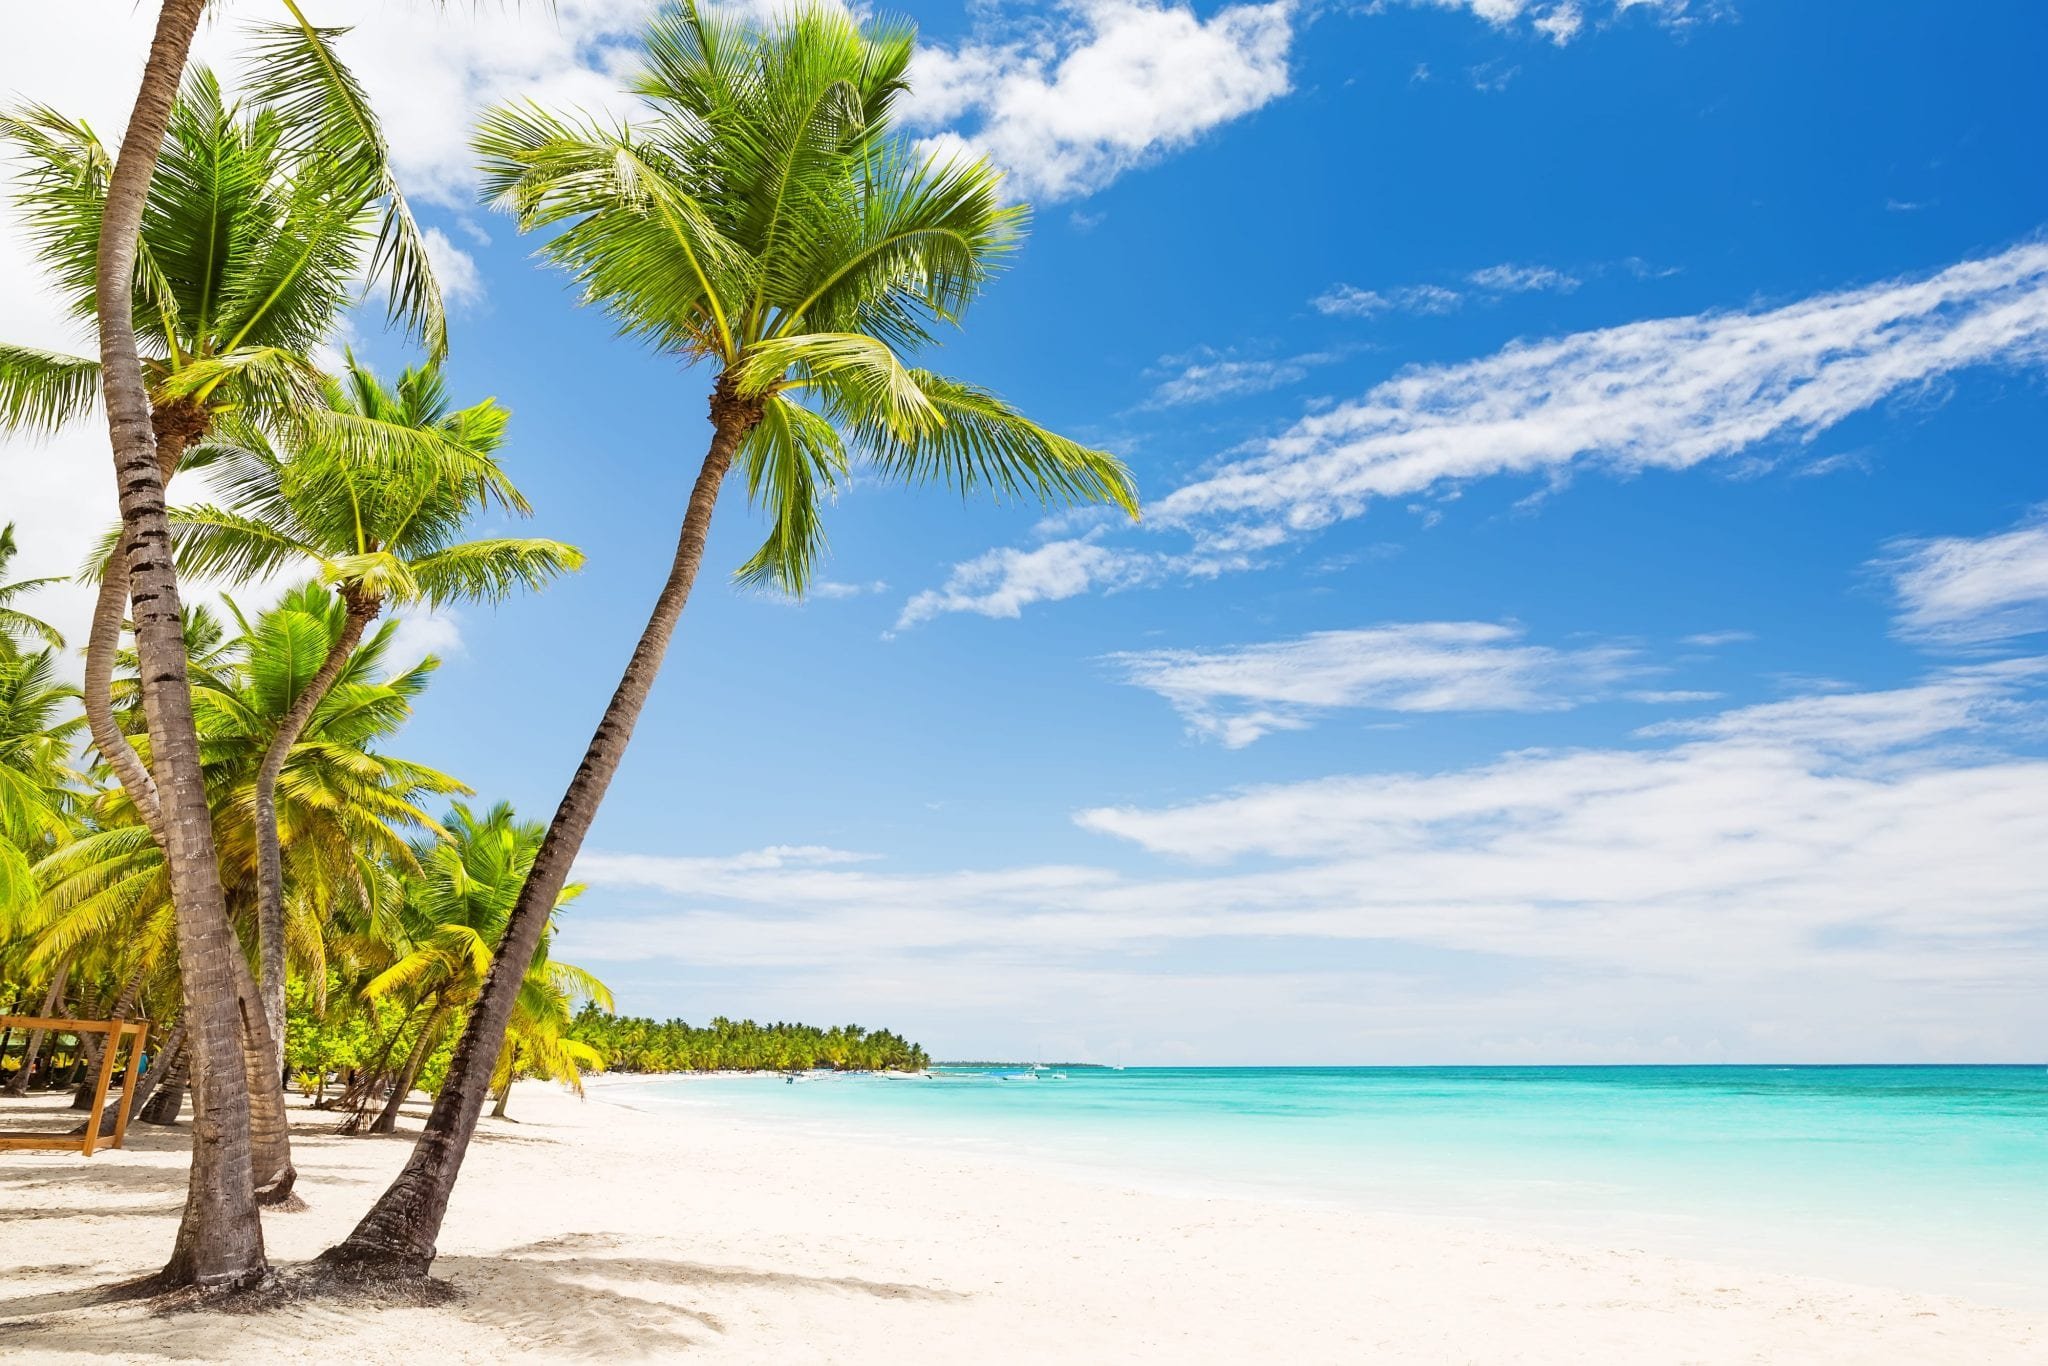 Punta Cana Destination Weddings All Inclusive Packages